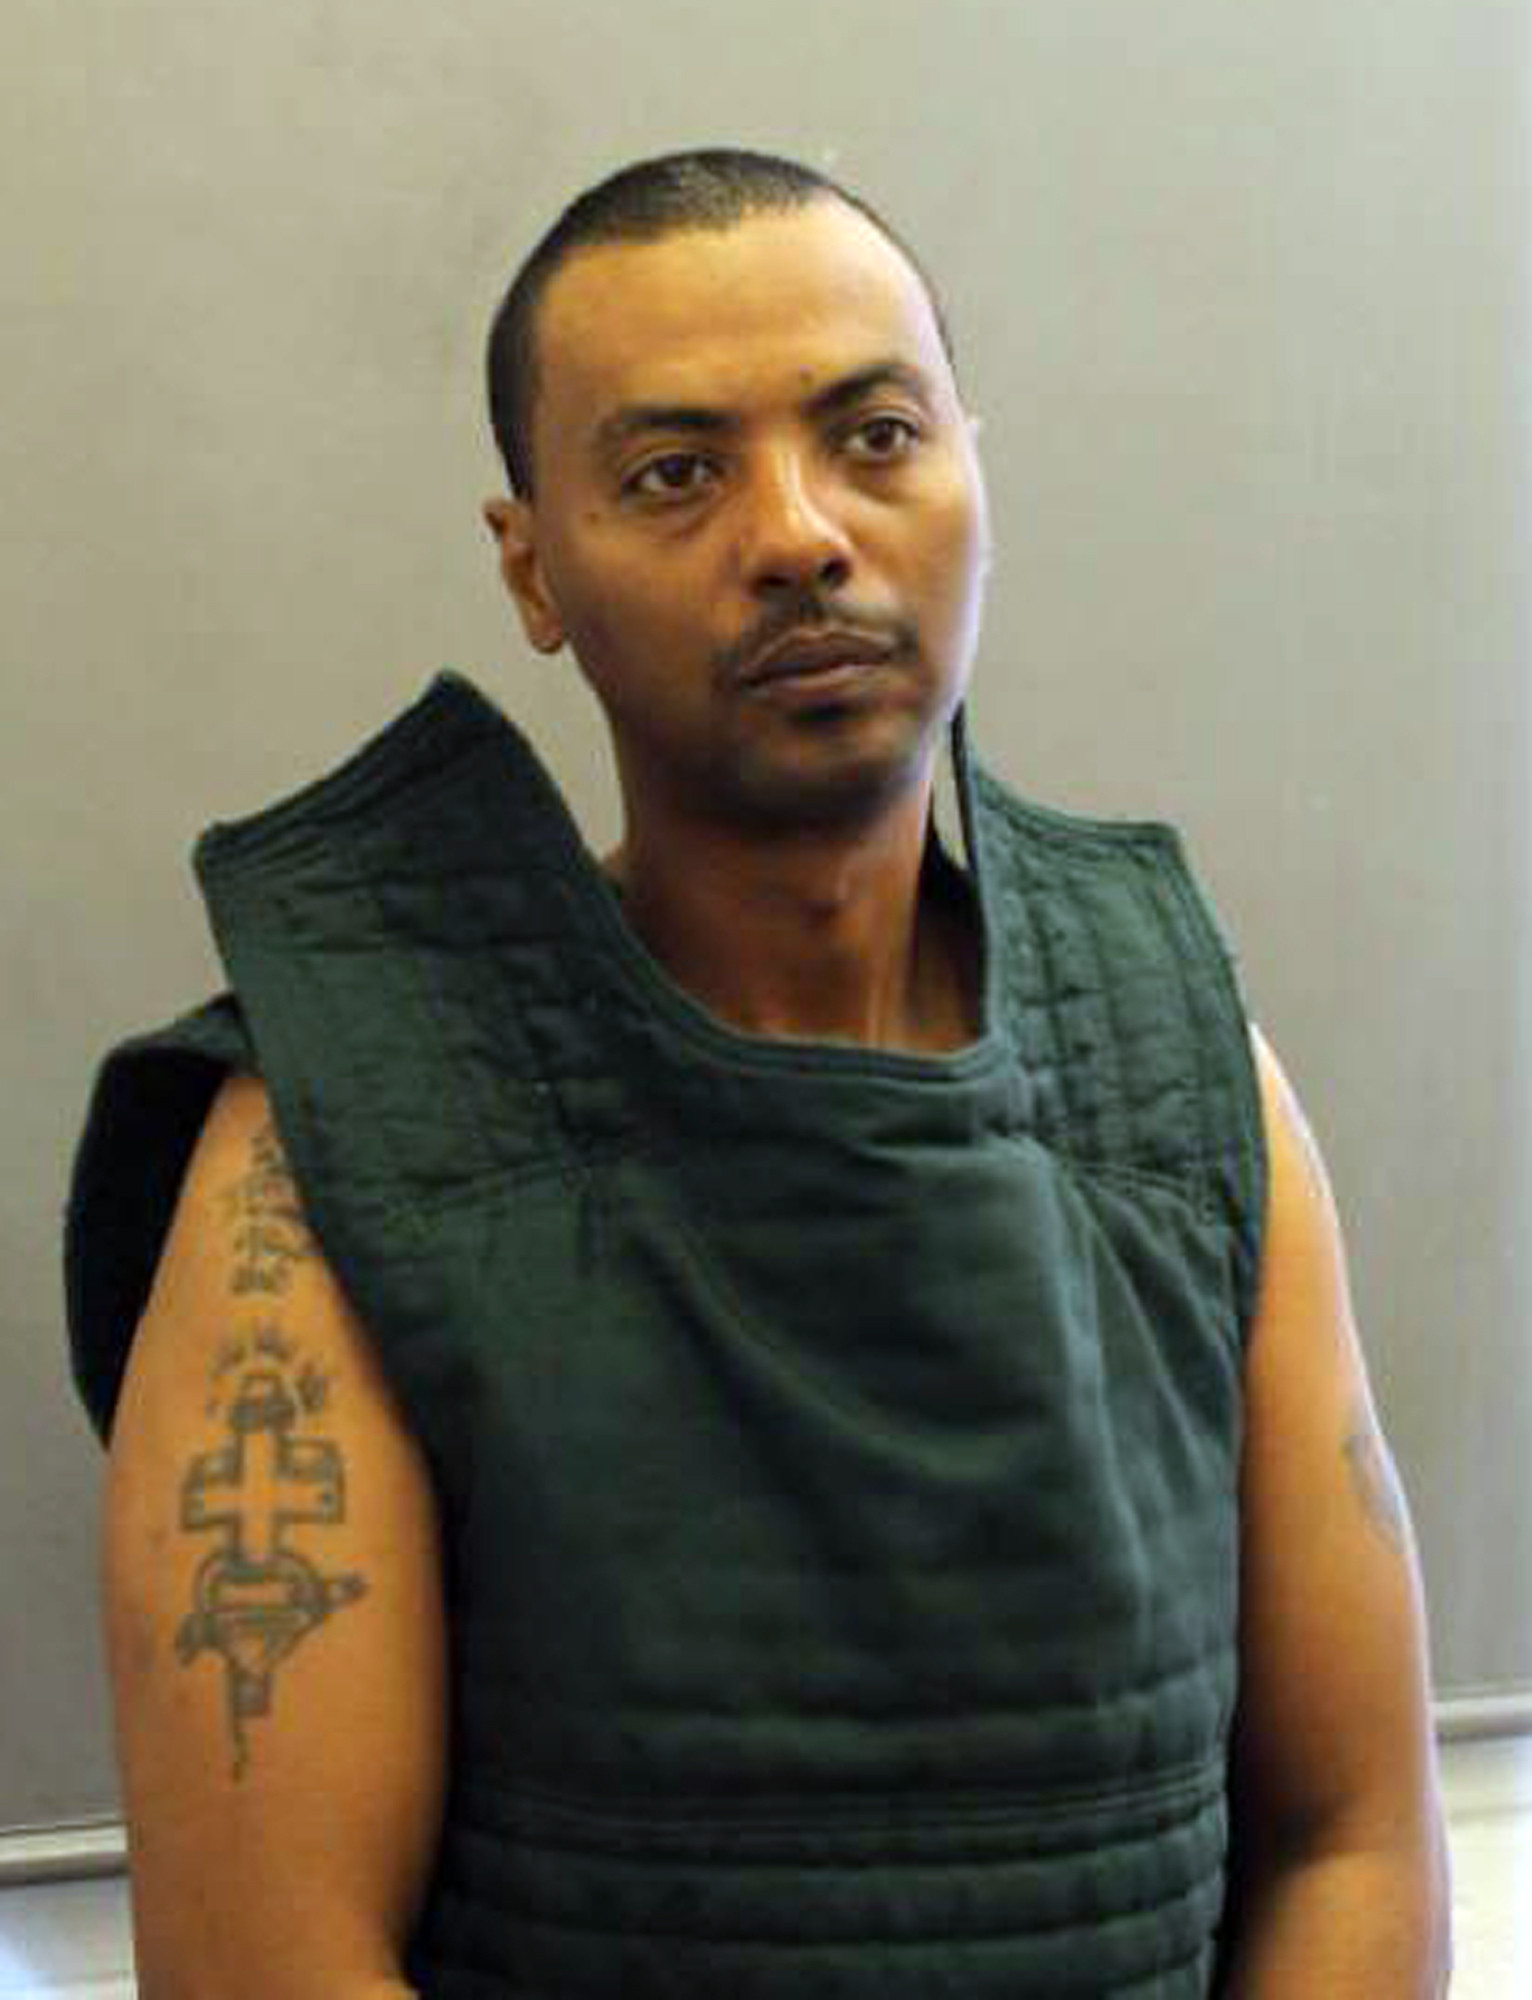 Virginia prisoner captured after escaping with guard's gun